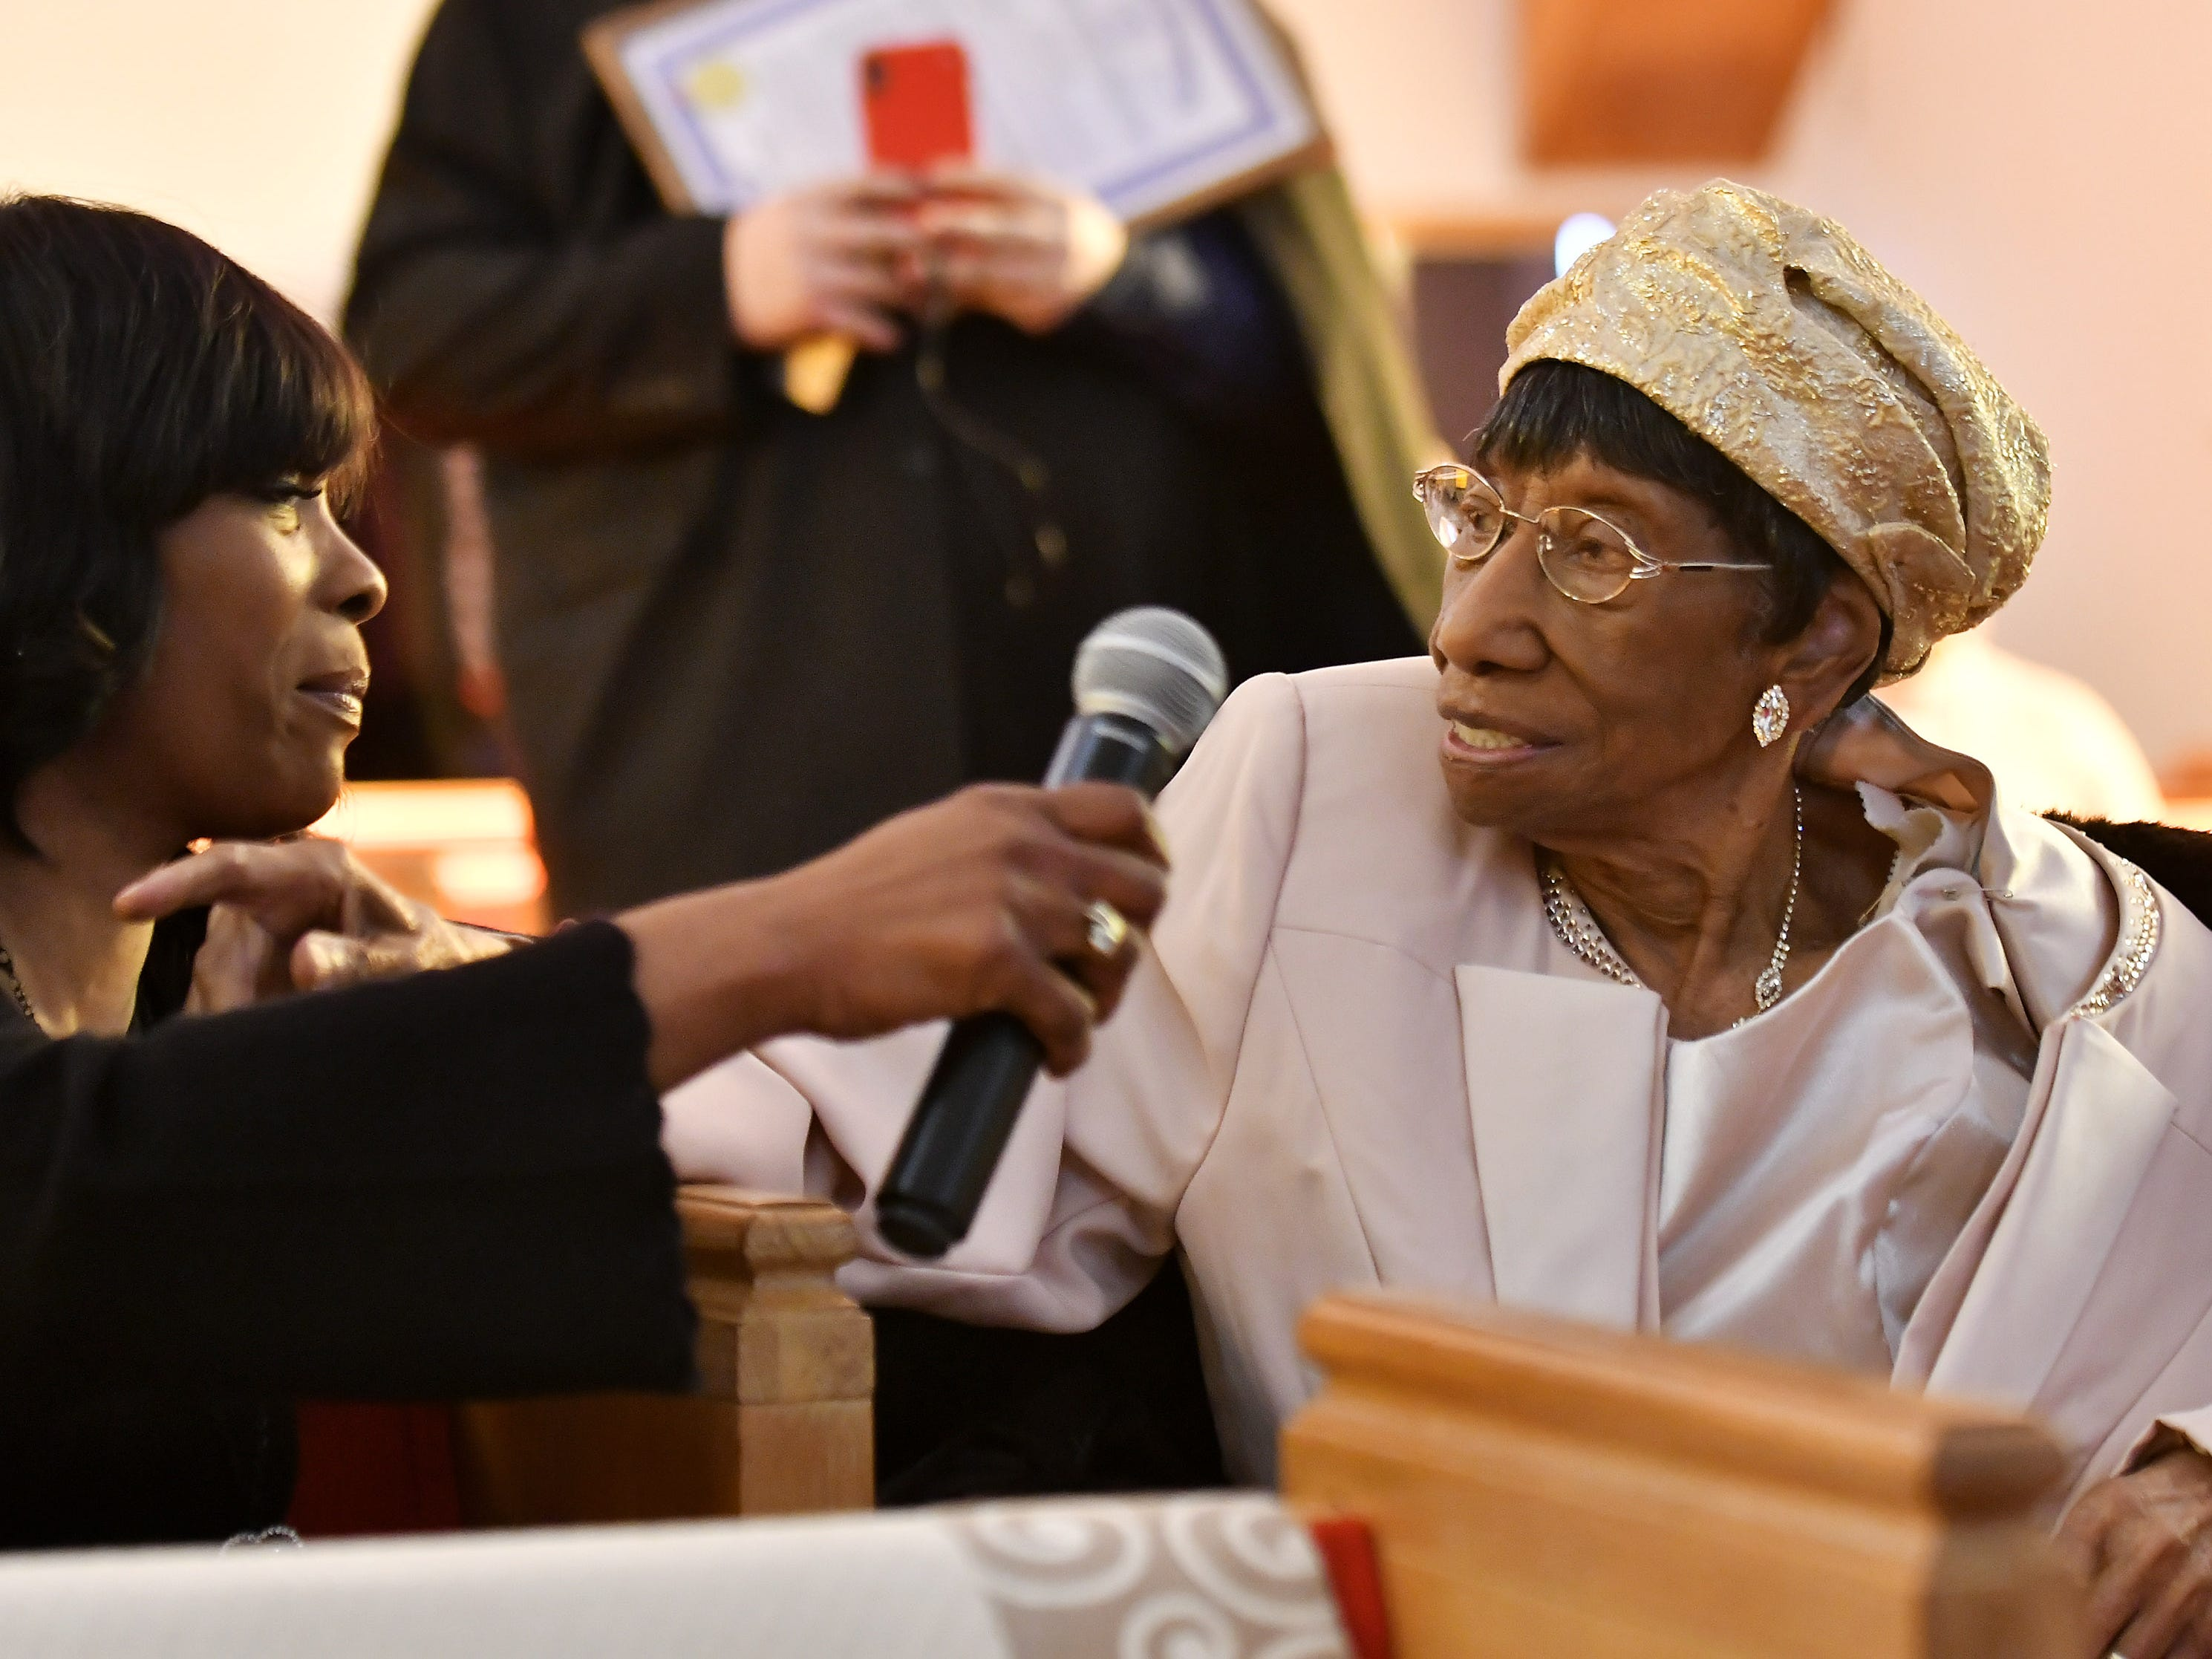 """Michelle Williams reaches a microphone over to her grandmother, """"Mother"""" Lois Holden so she can speak at the end of the service. Michelle also takes care of Lois Holden full time."""